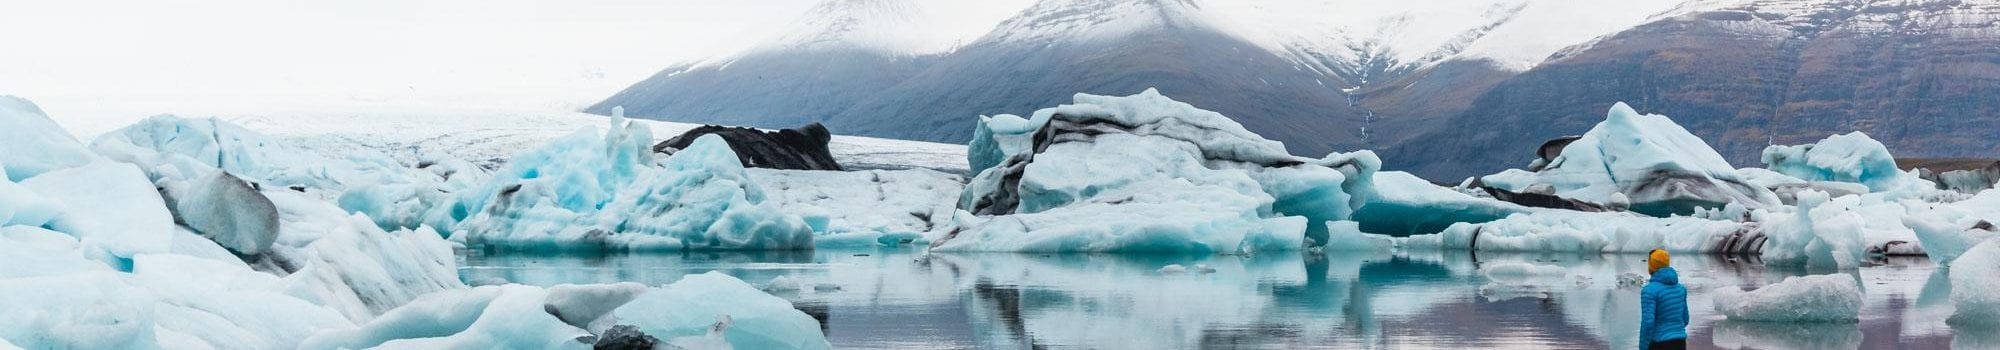 cyan blue ice bergs floating on a lagoon